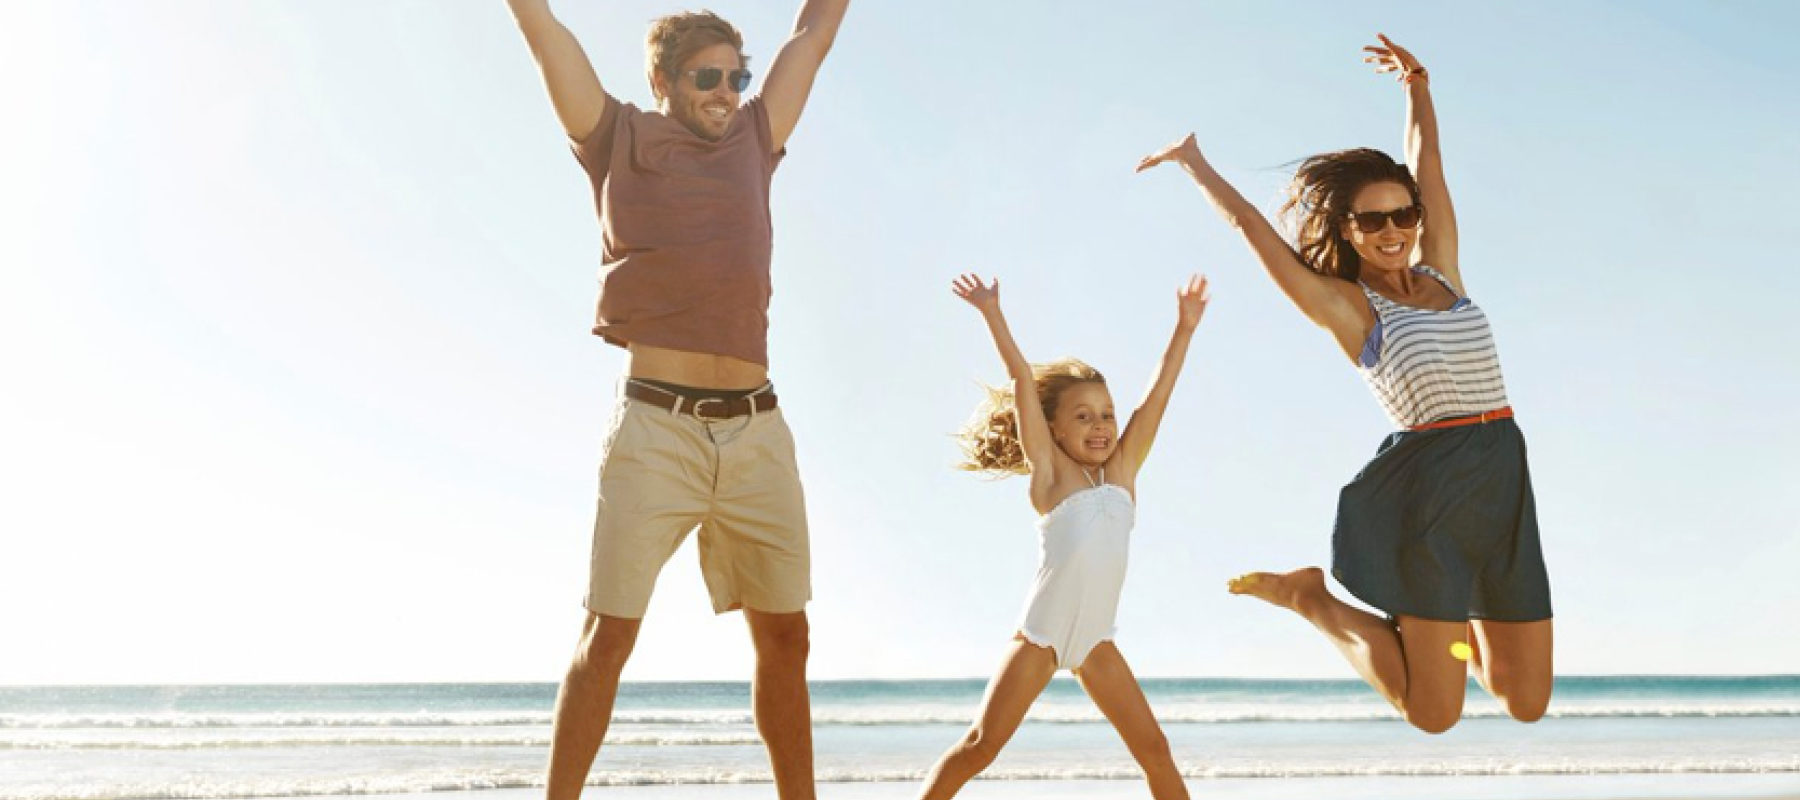 planning family holiday jumping beach stock image